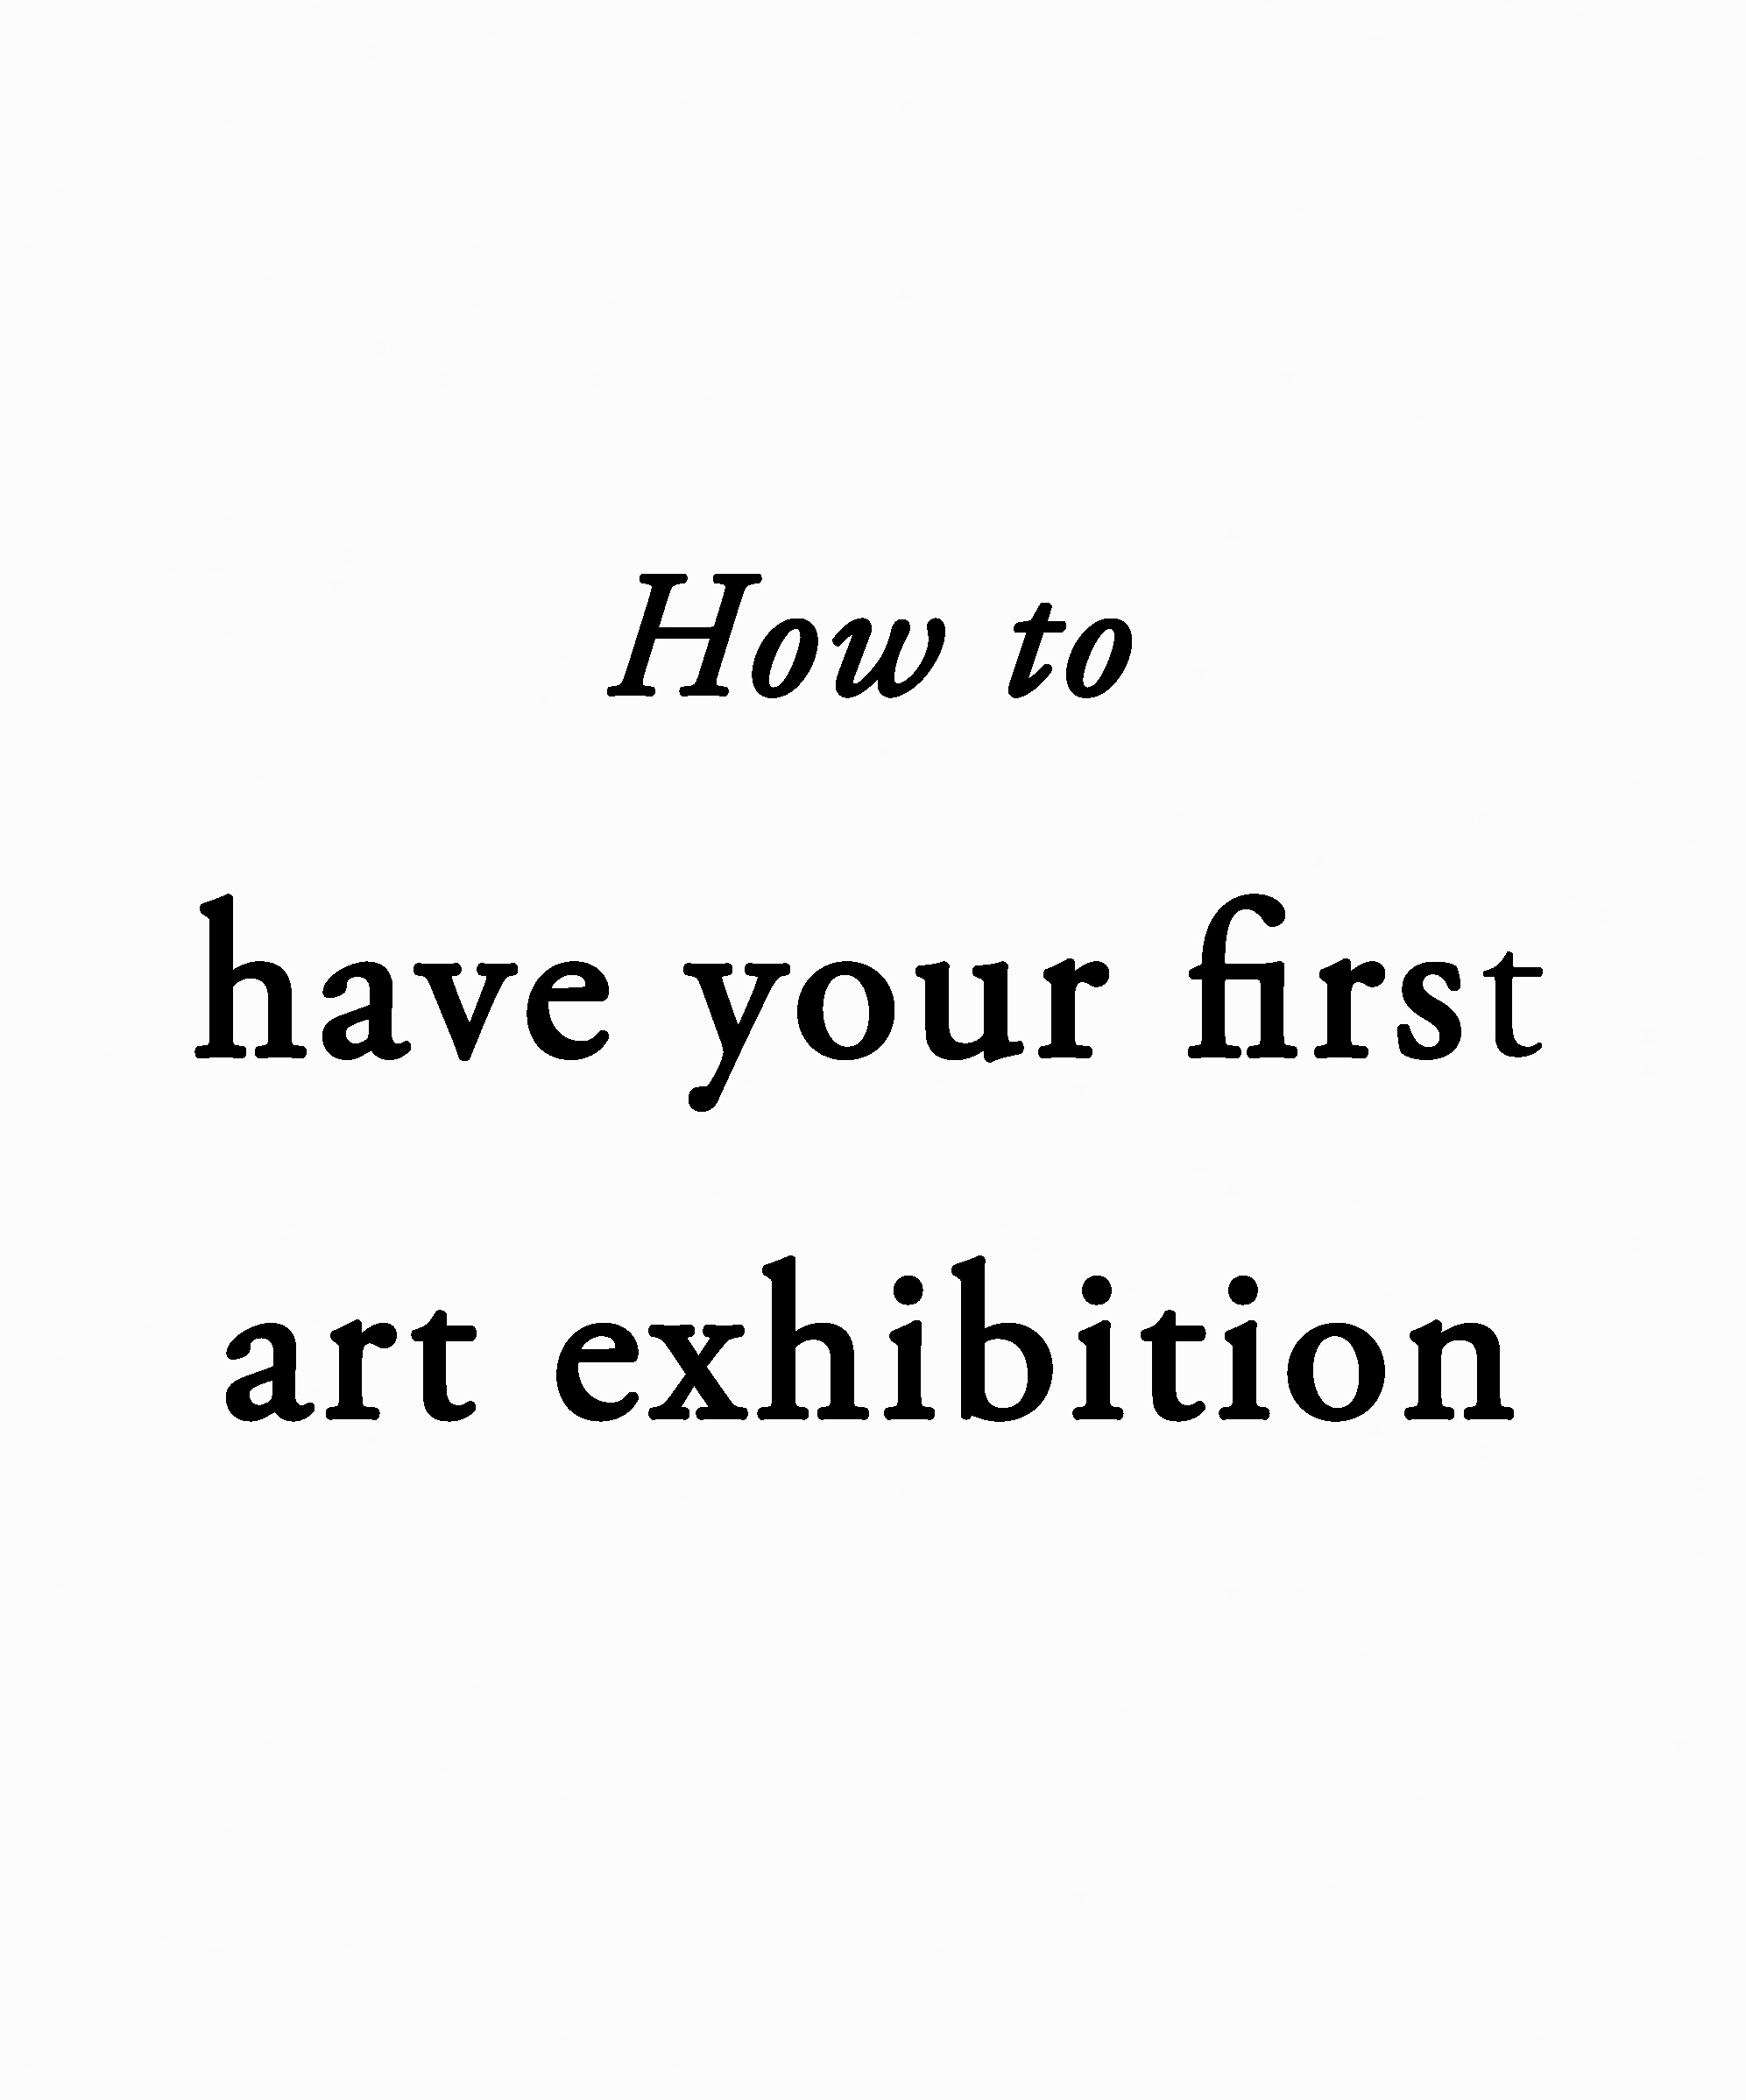 how to first art exhibition.jpg